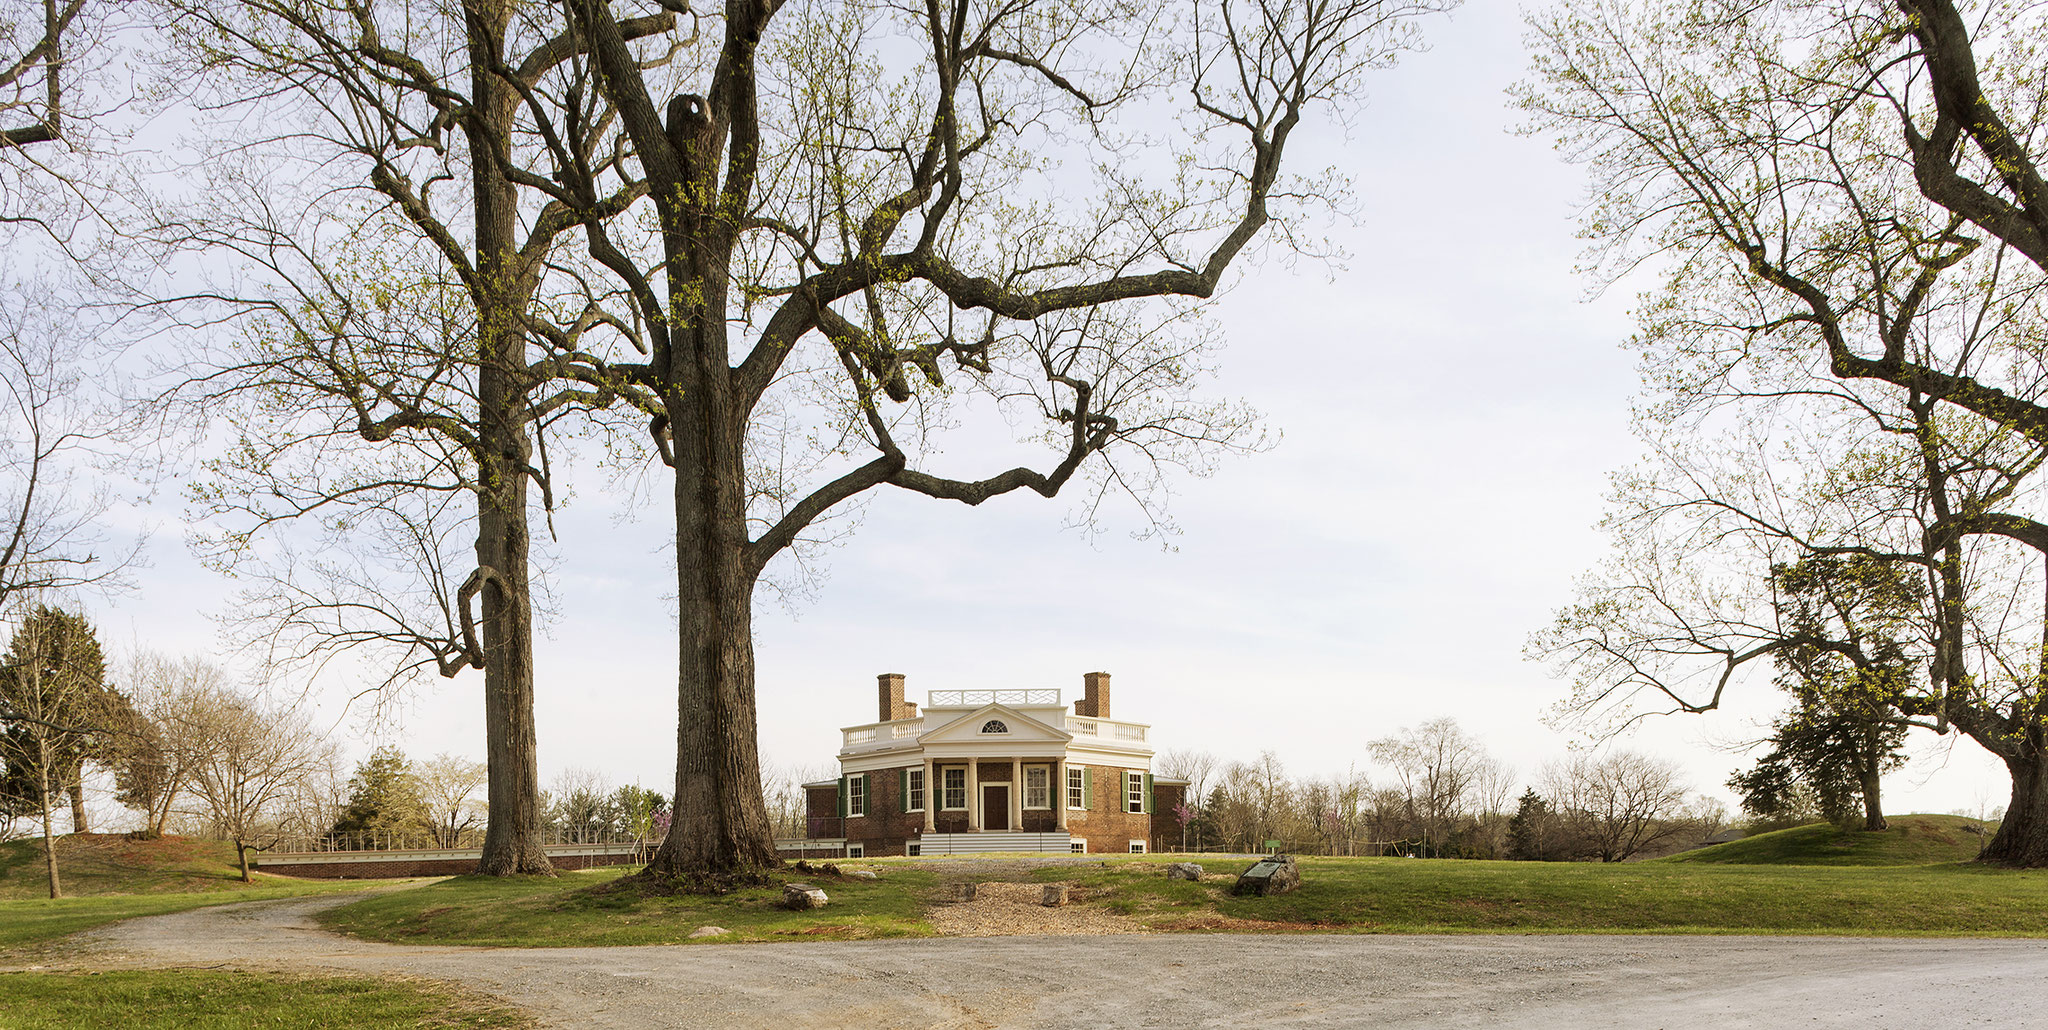 Poplar Forest, Virginia.